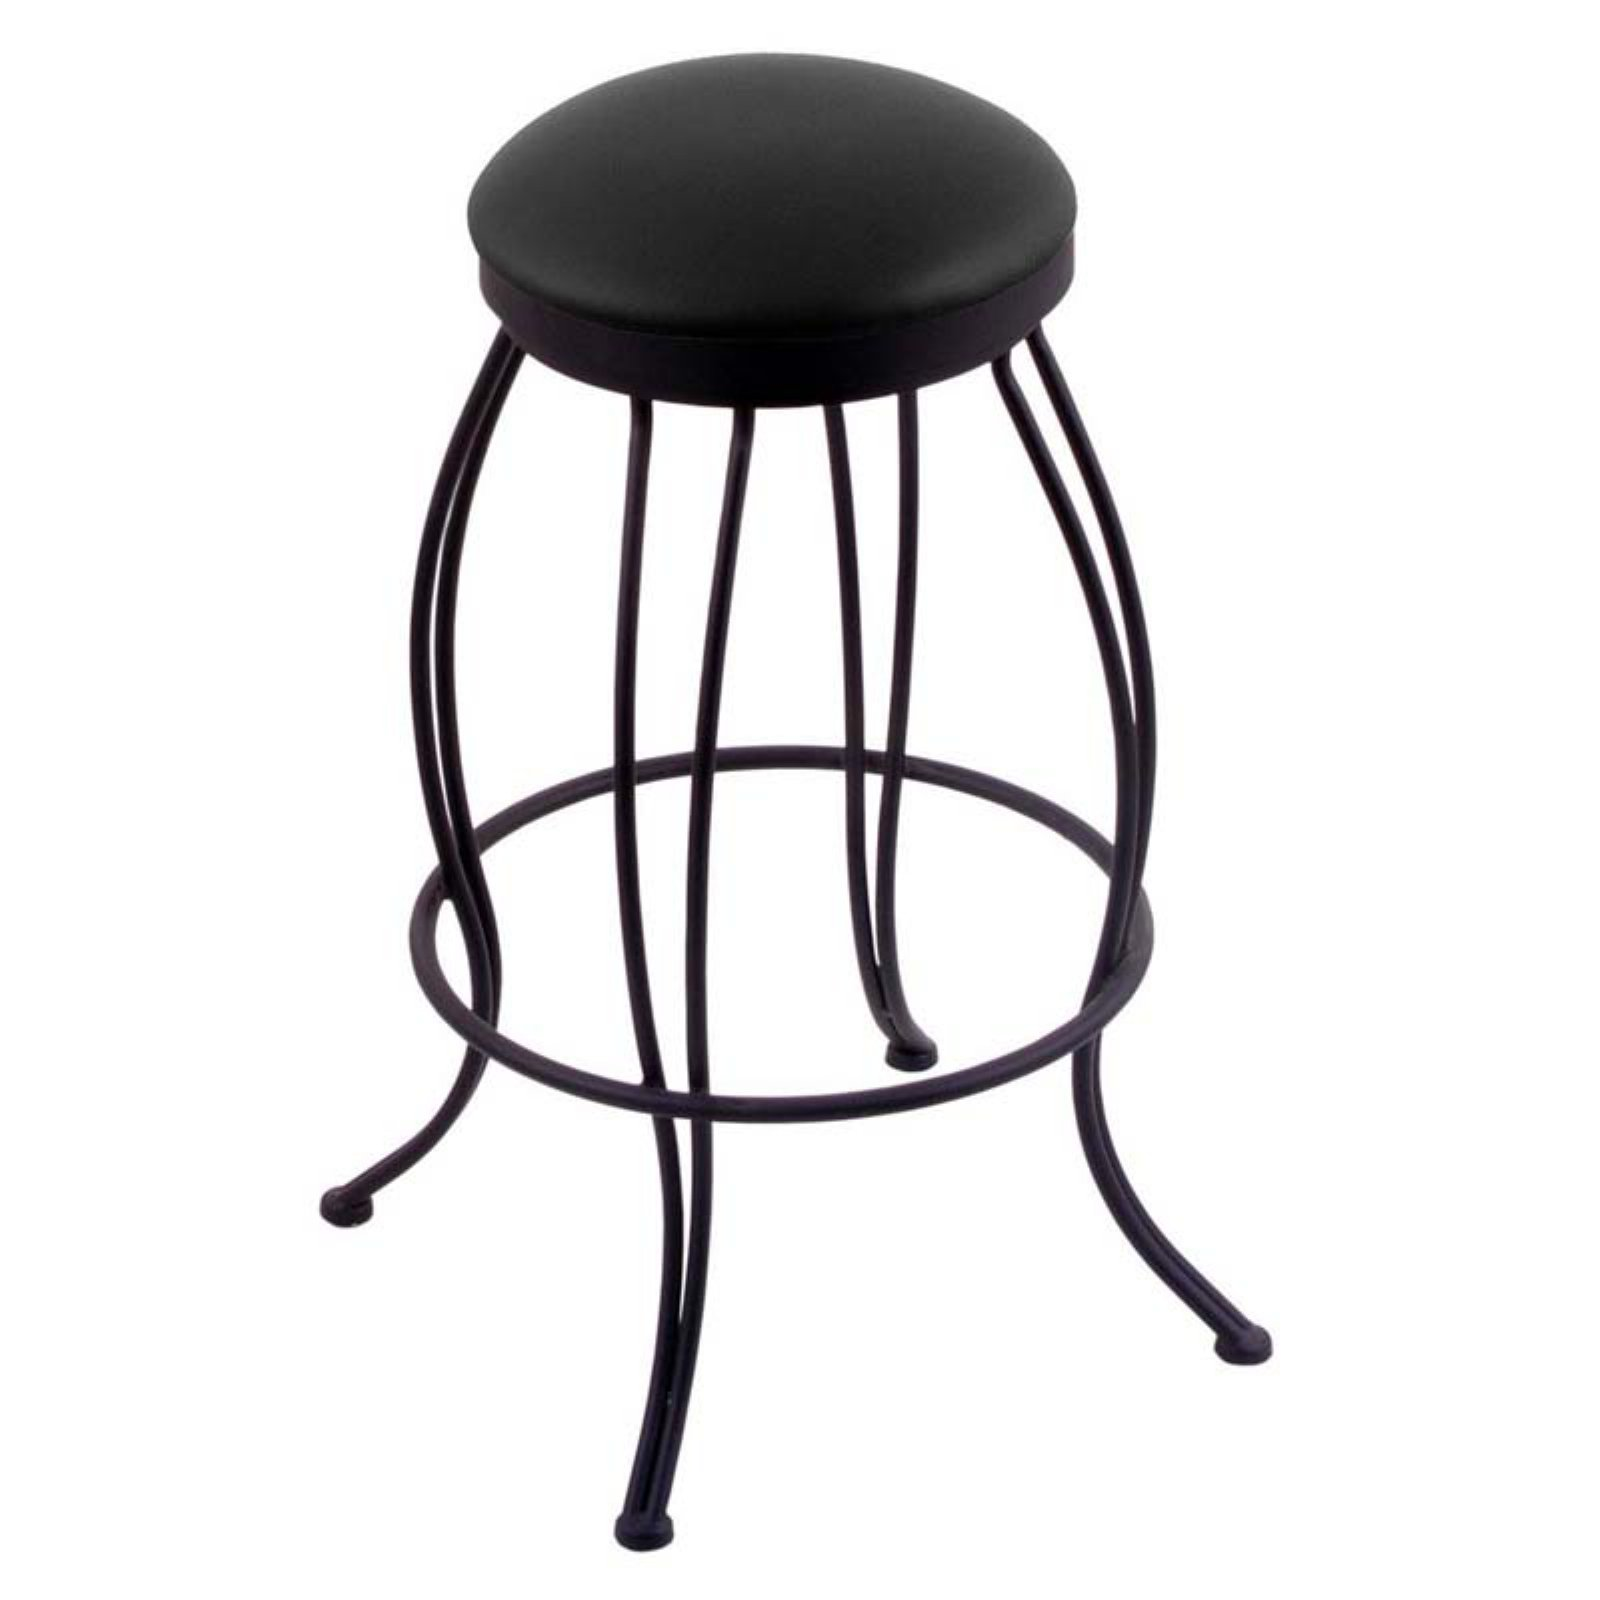 Holland Bar Stool Georgian 25 in. Swivel Counter Stool with Faux Leather Seat - Black Wrinkle